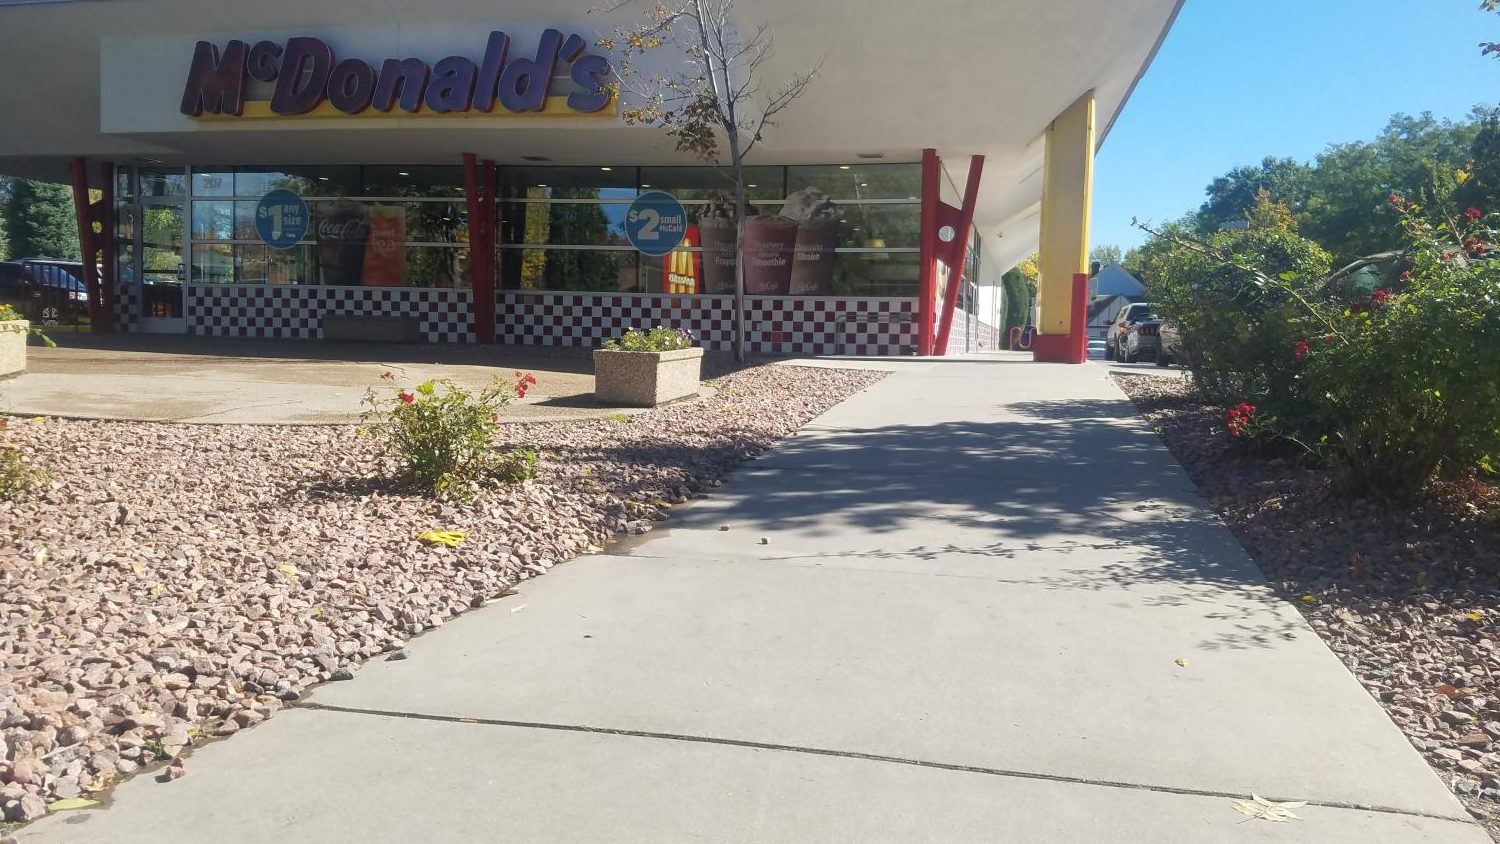 One of the three participating McDonald's  restaurants in the state of Colorado.